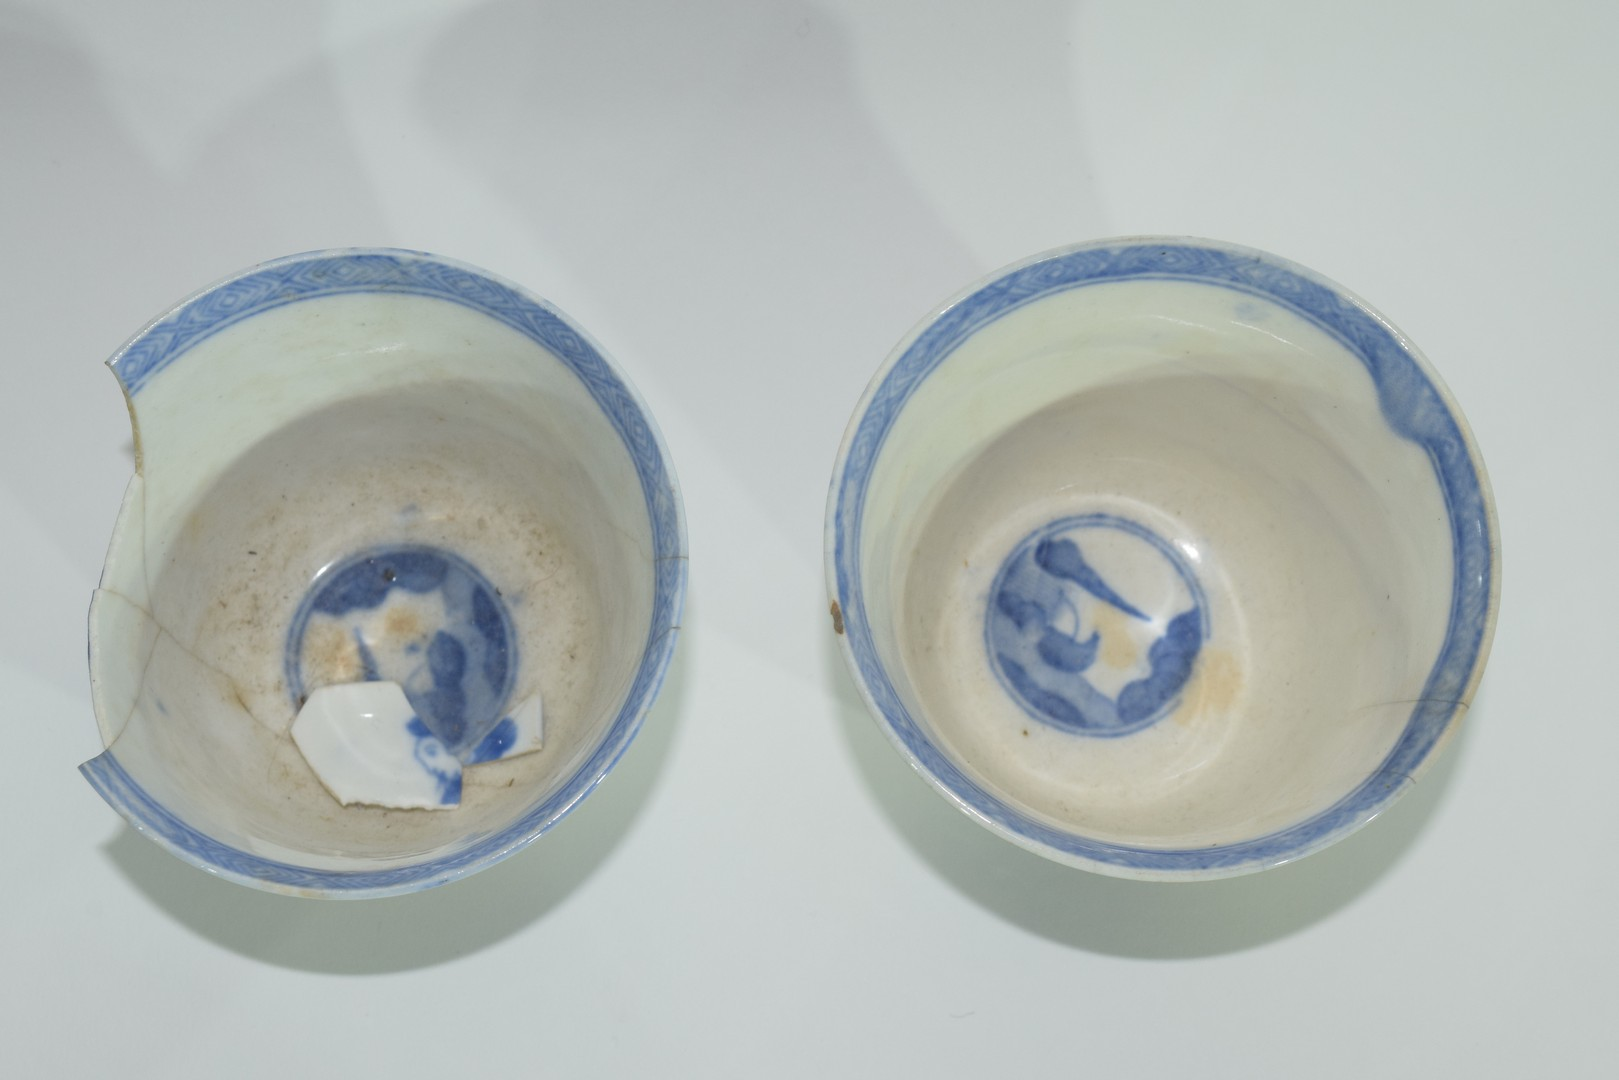 Group of Chinese export porcelain plates - Image 7 of 15